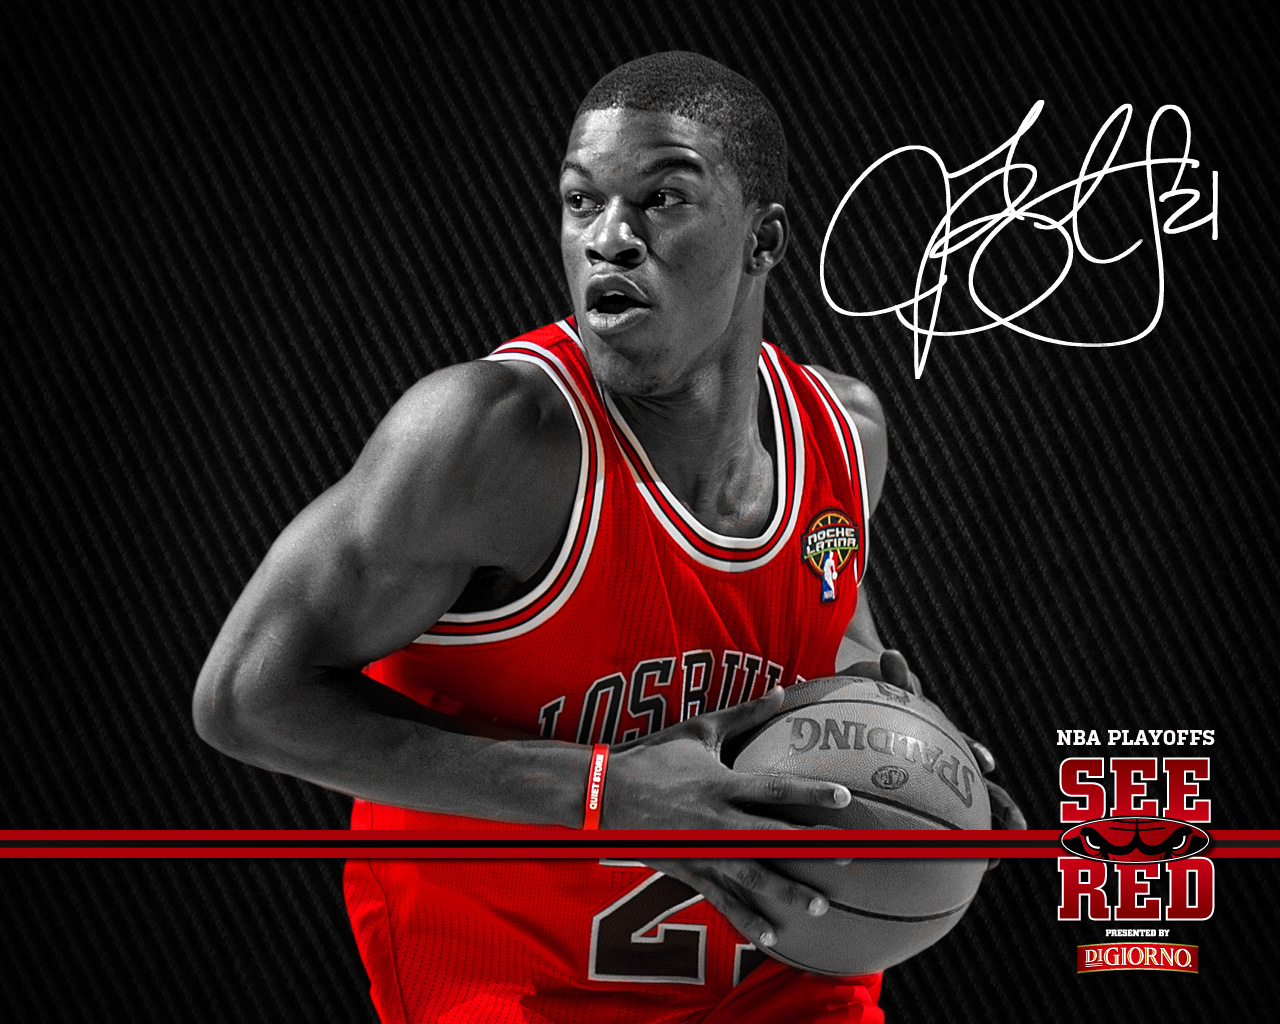 2012 Playoffs See Red Wallpaper  Chicago Bulls